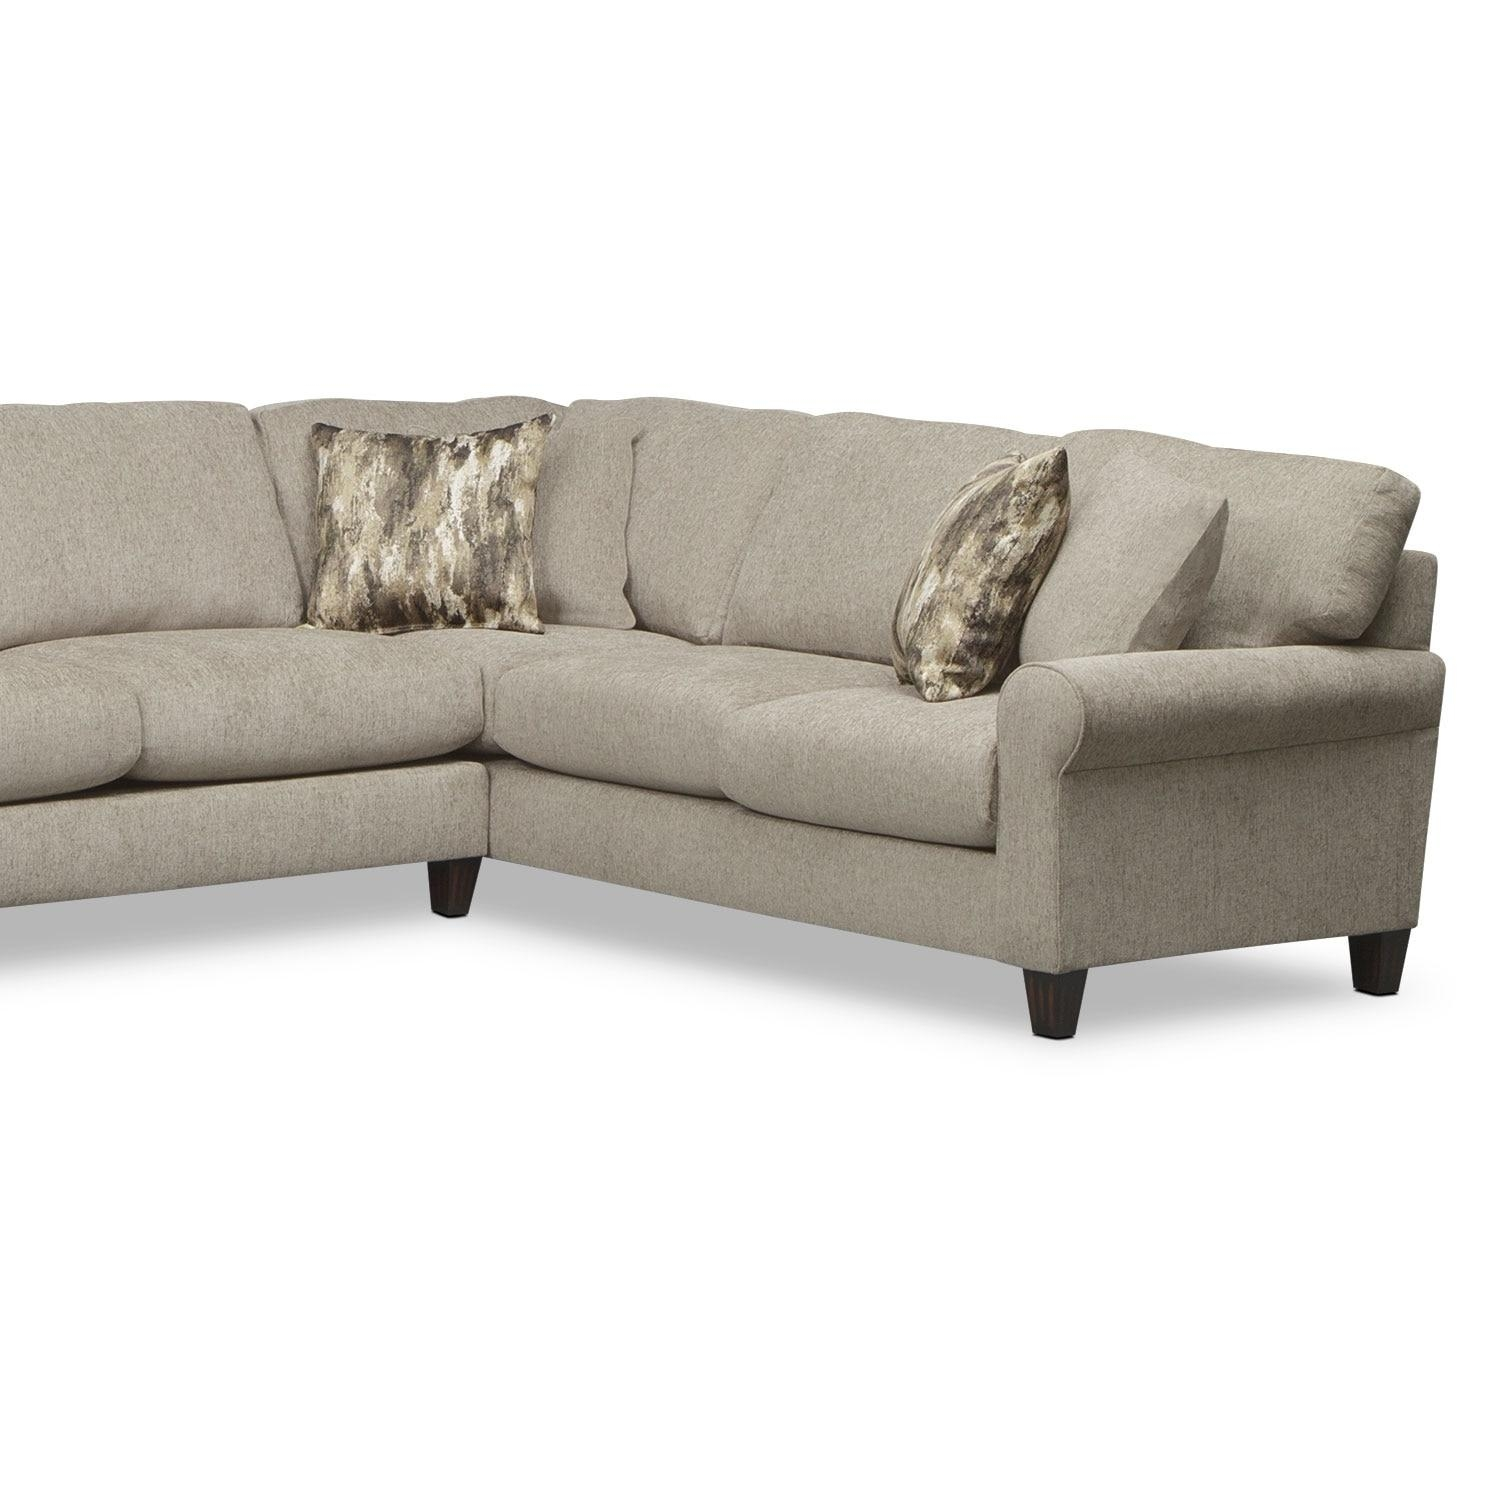 Karma 3 Piece Sectional With Left Facing Cuddler – Mink | Value In Cuddler Sectional Sofa (Image 9 of 15)